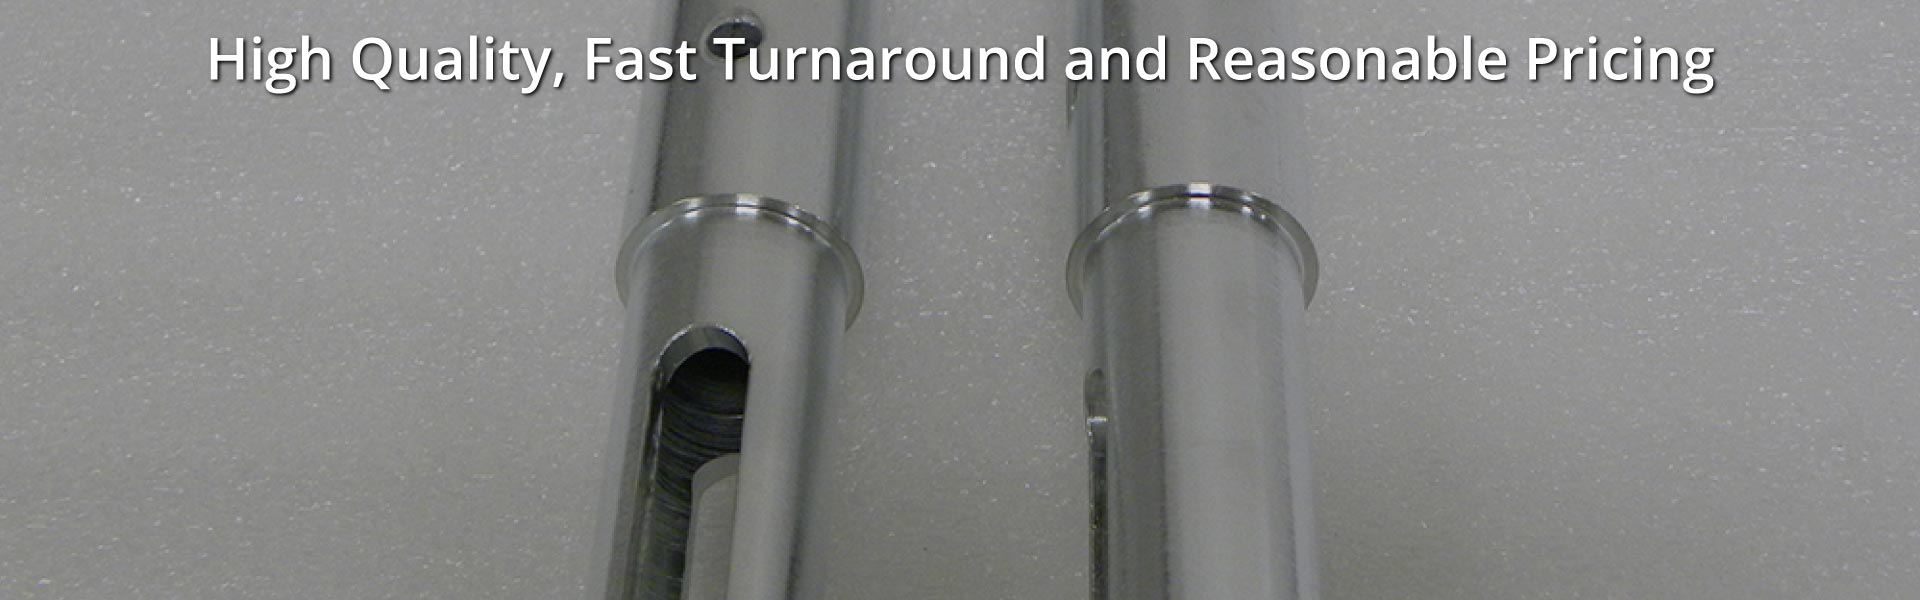 High Quality, Fast Turnaround and Reasonable Pricing | Tin over steel